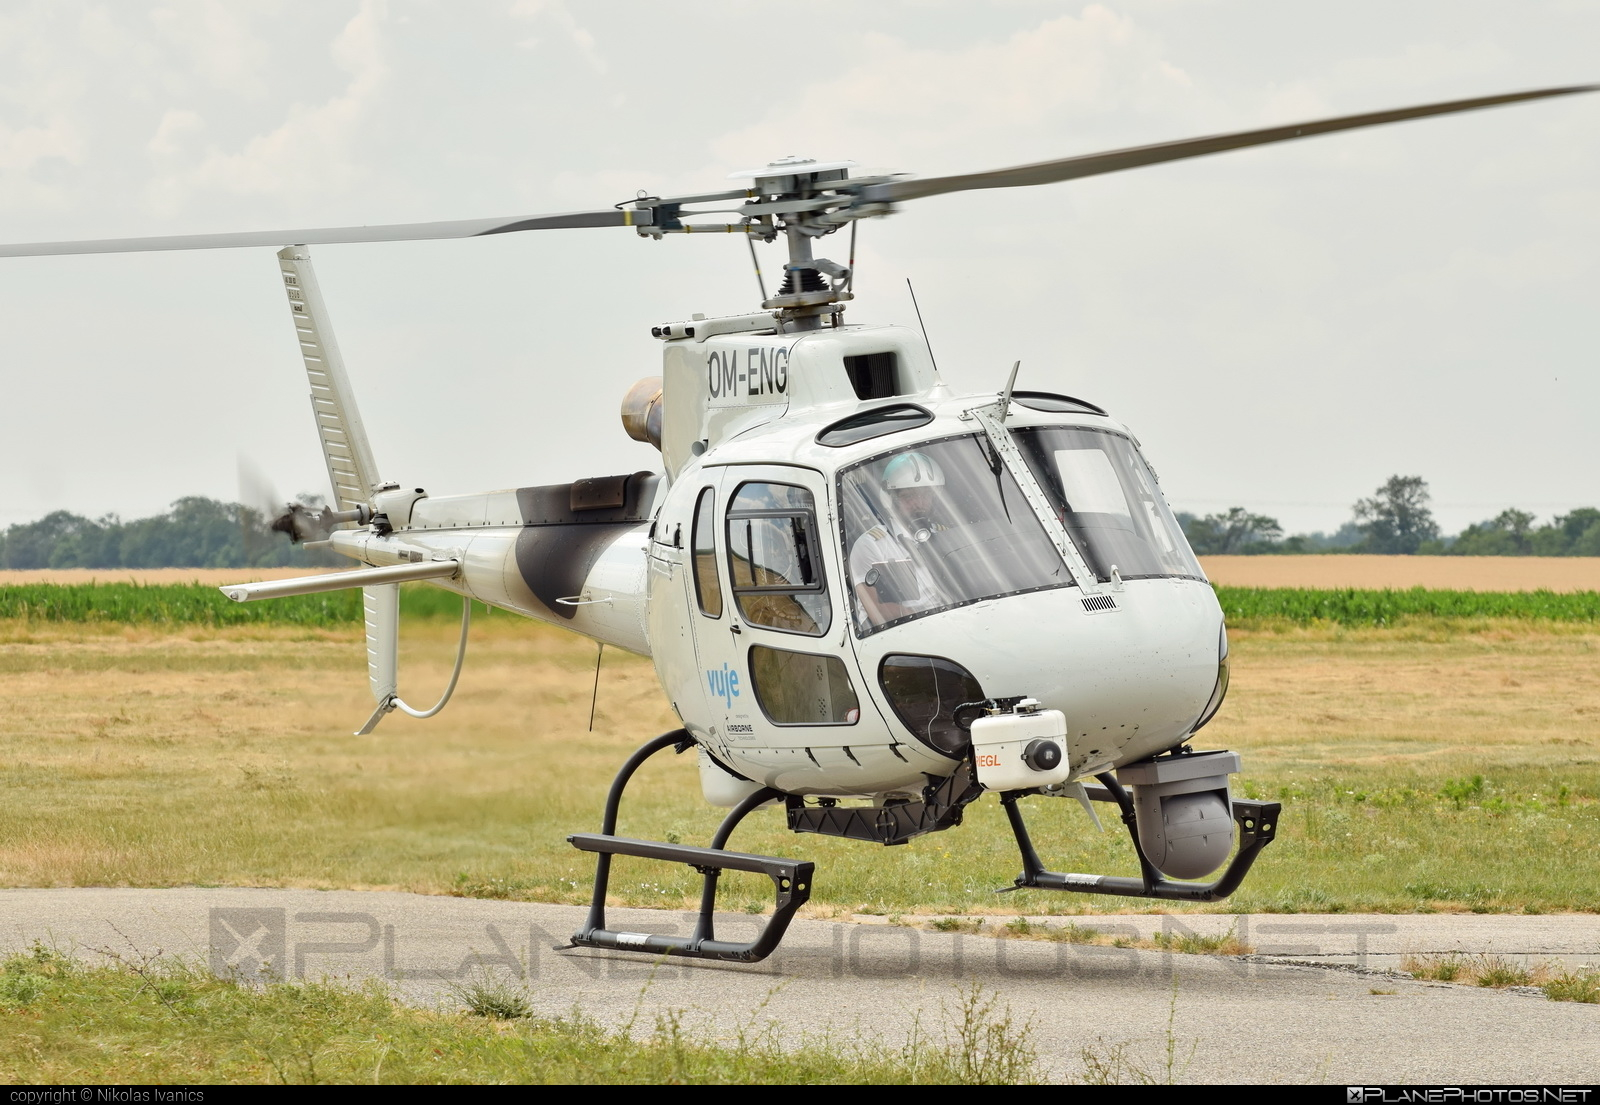 Aerospatiale AS350 Ecureuil - OM-ENG operated by Private operator #aerospatiale